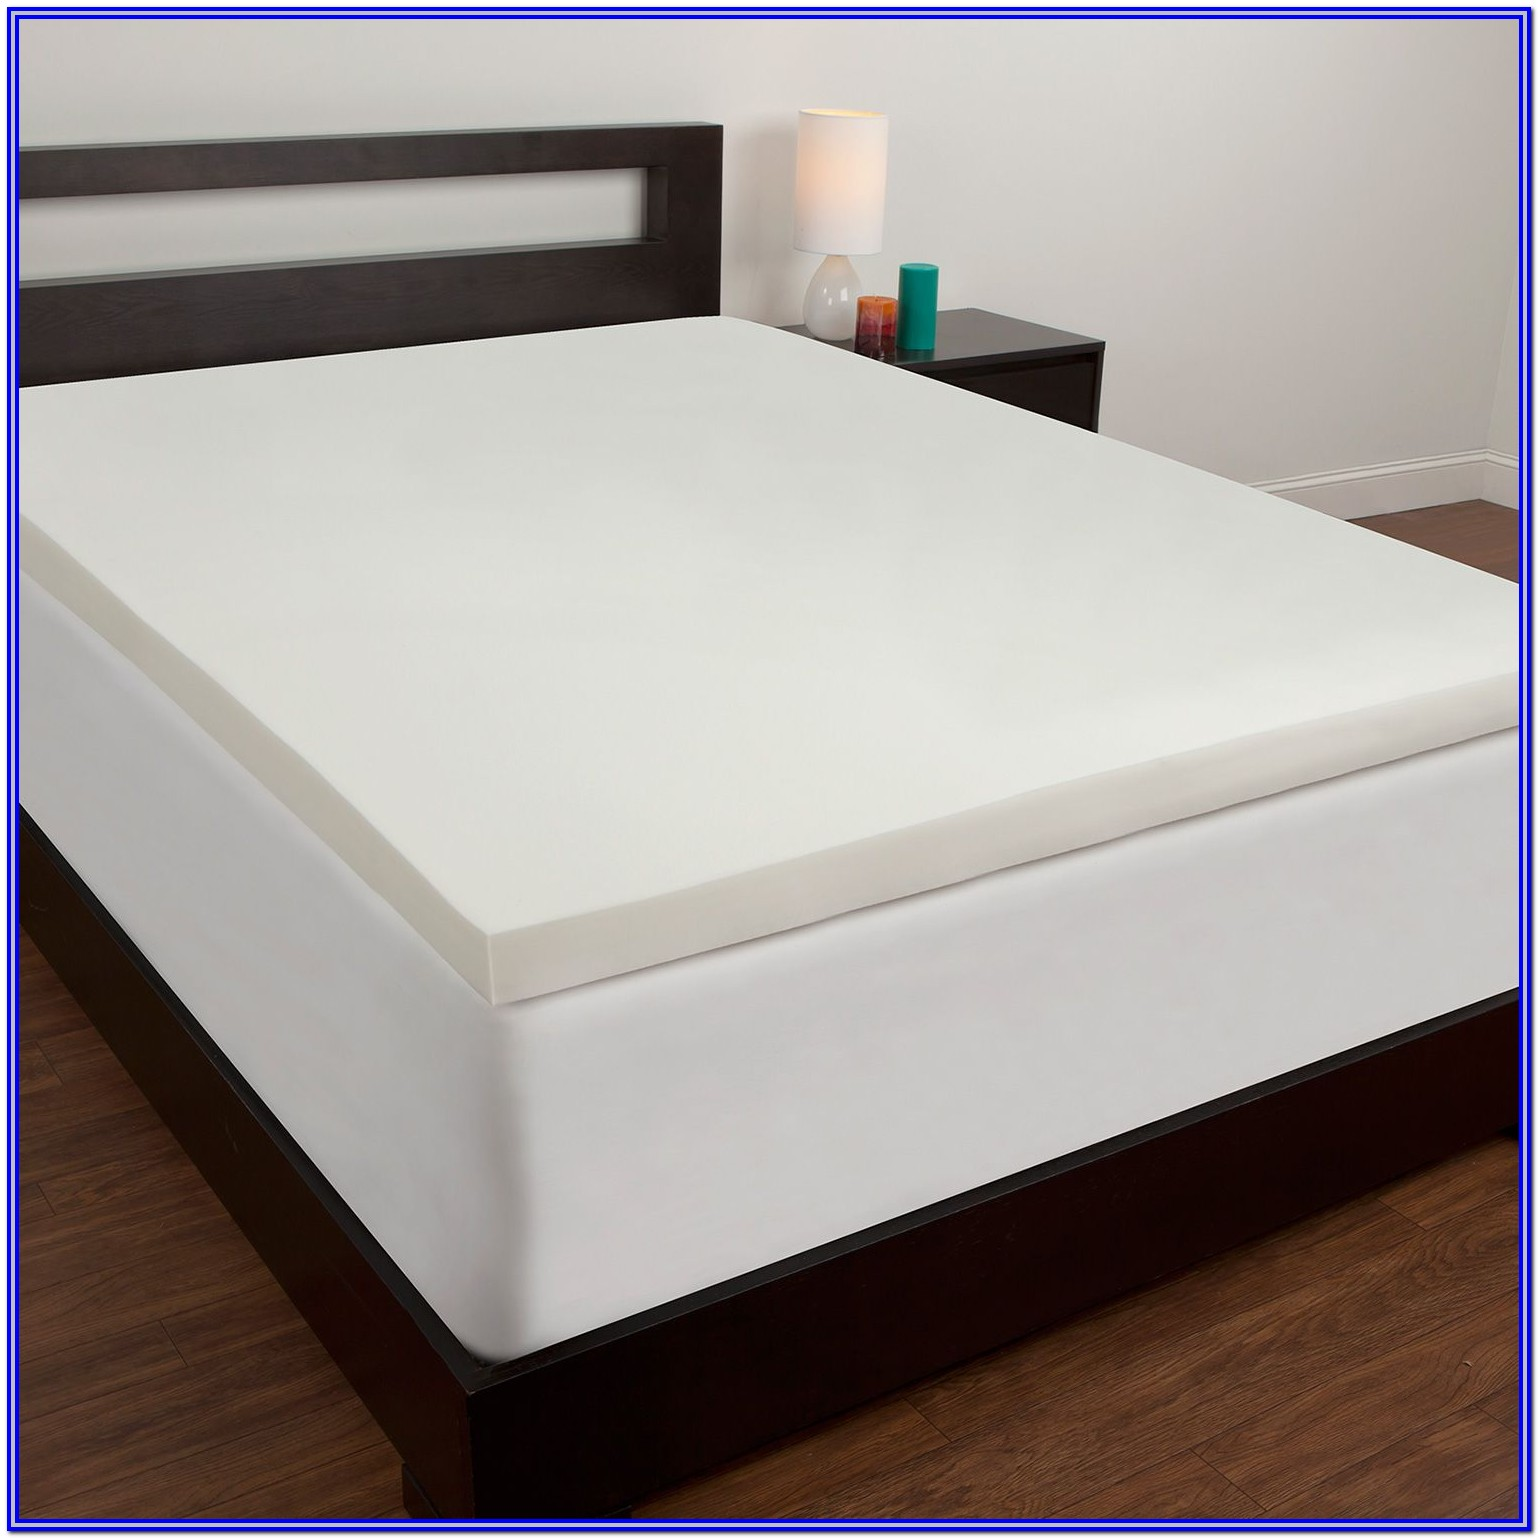 Best Chill Pad For Bed